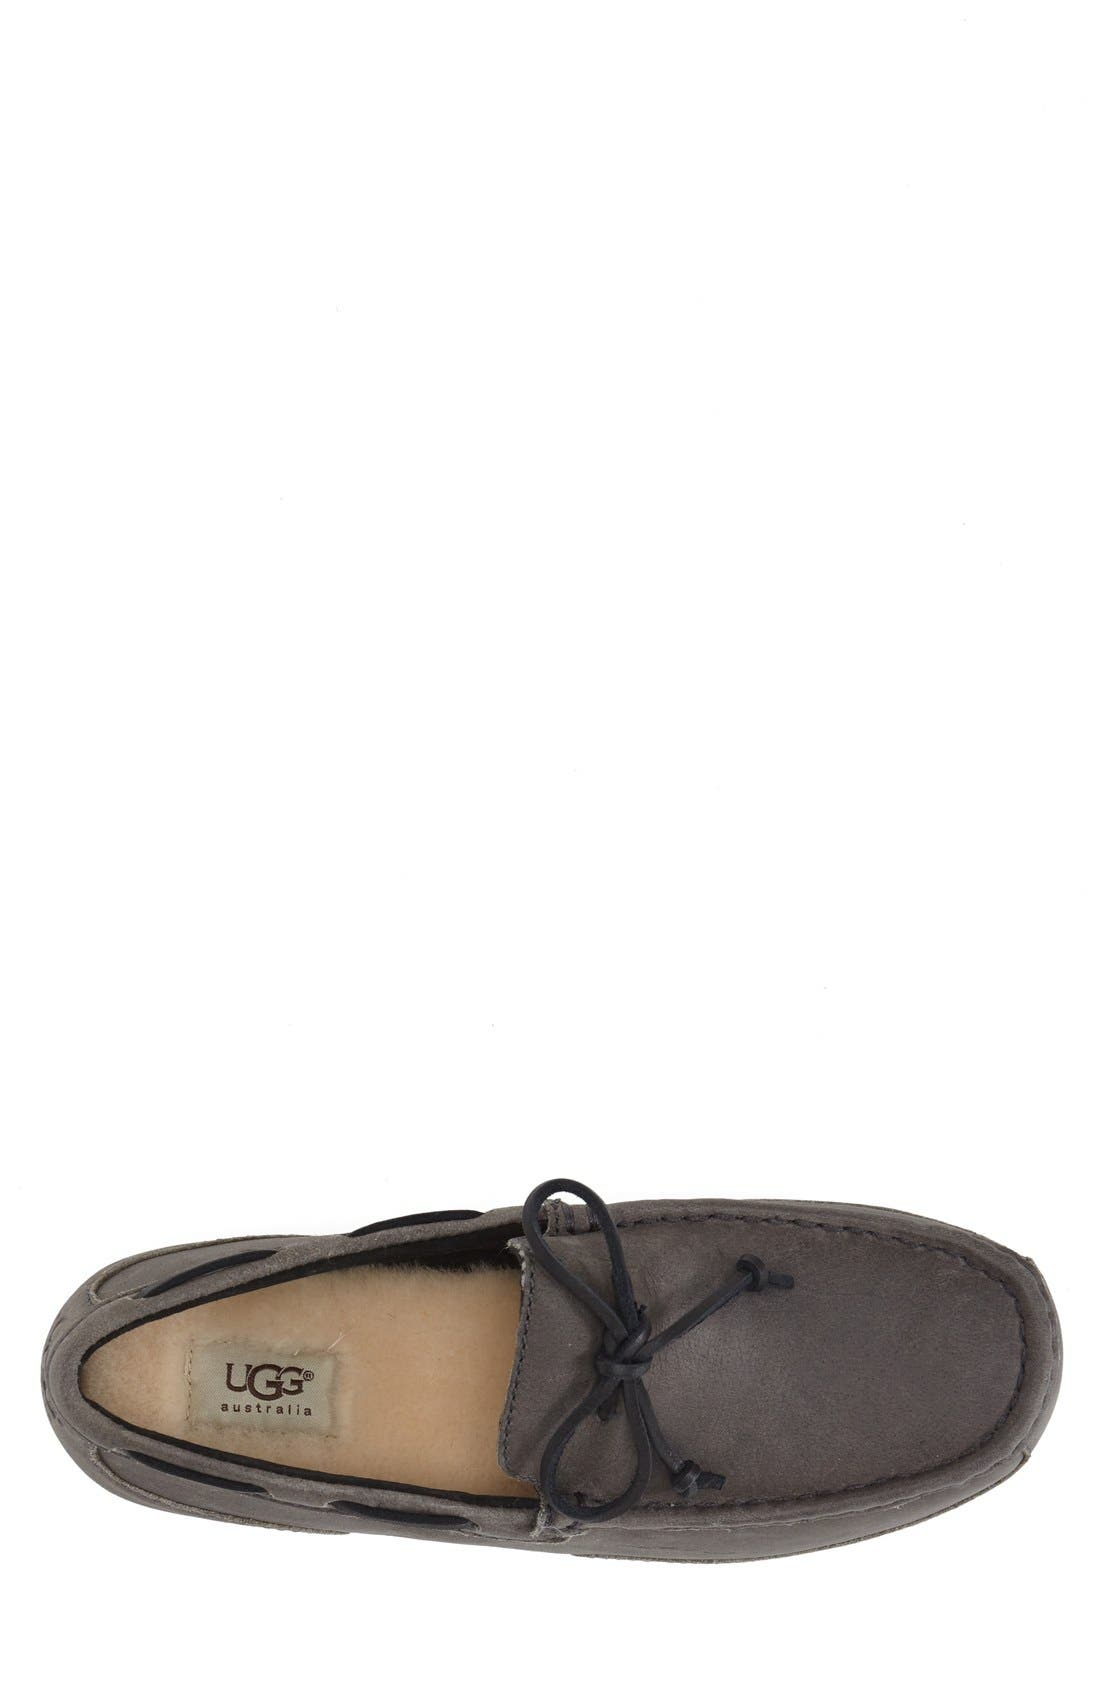 'Chester' Driving Loafer,                             Alternate thumbnail 37, color,